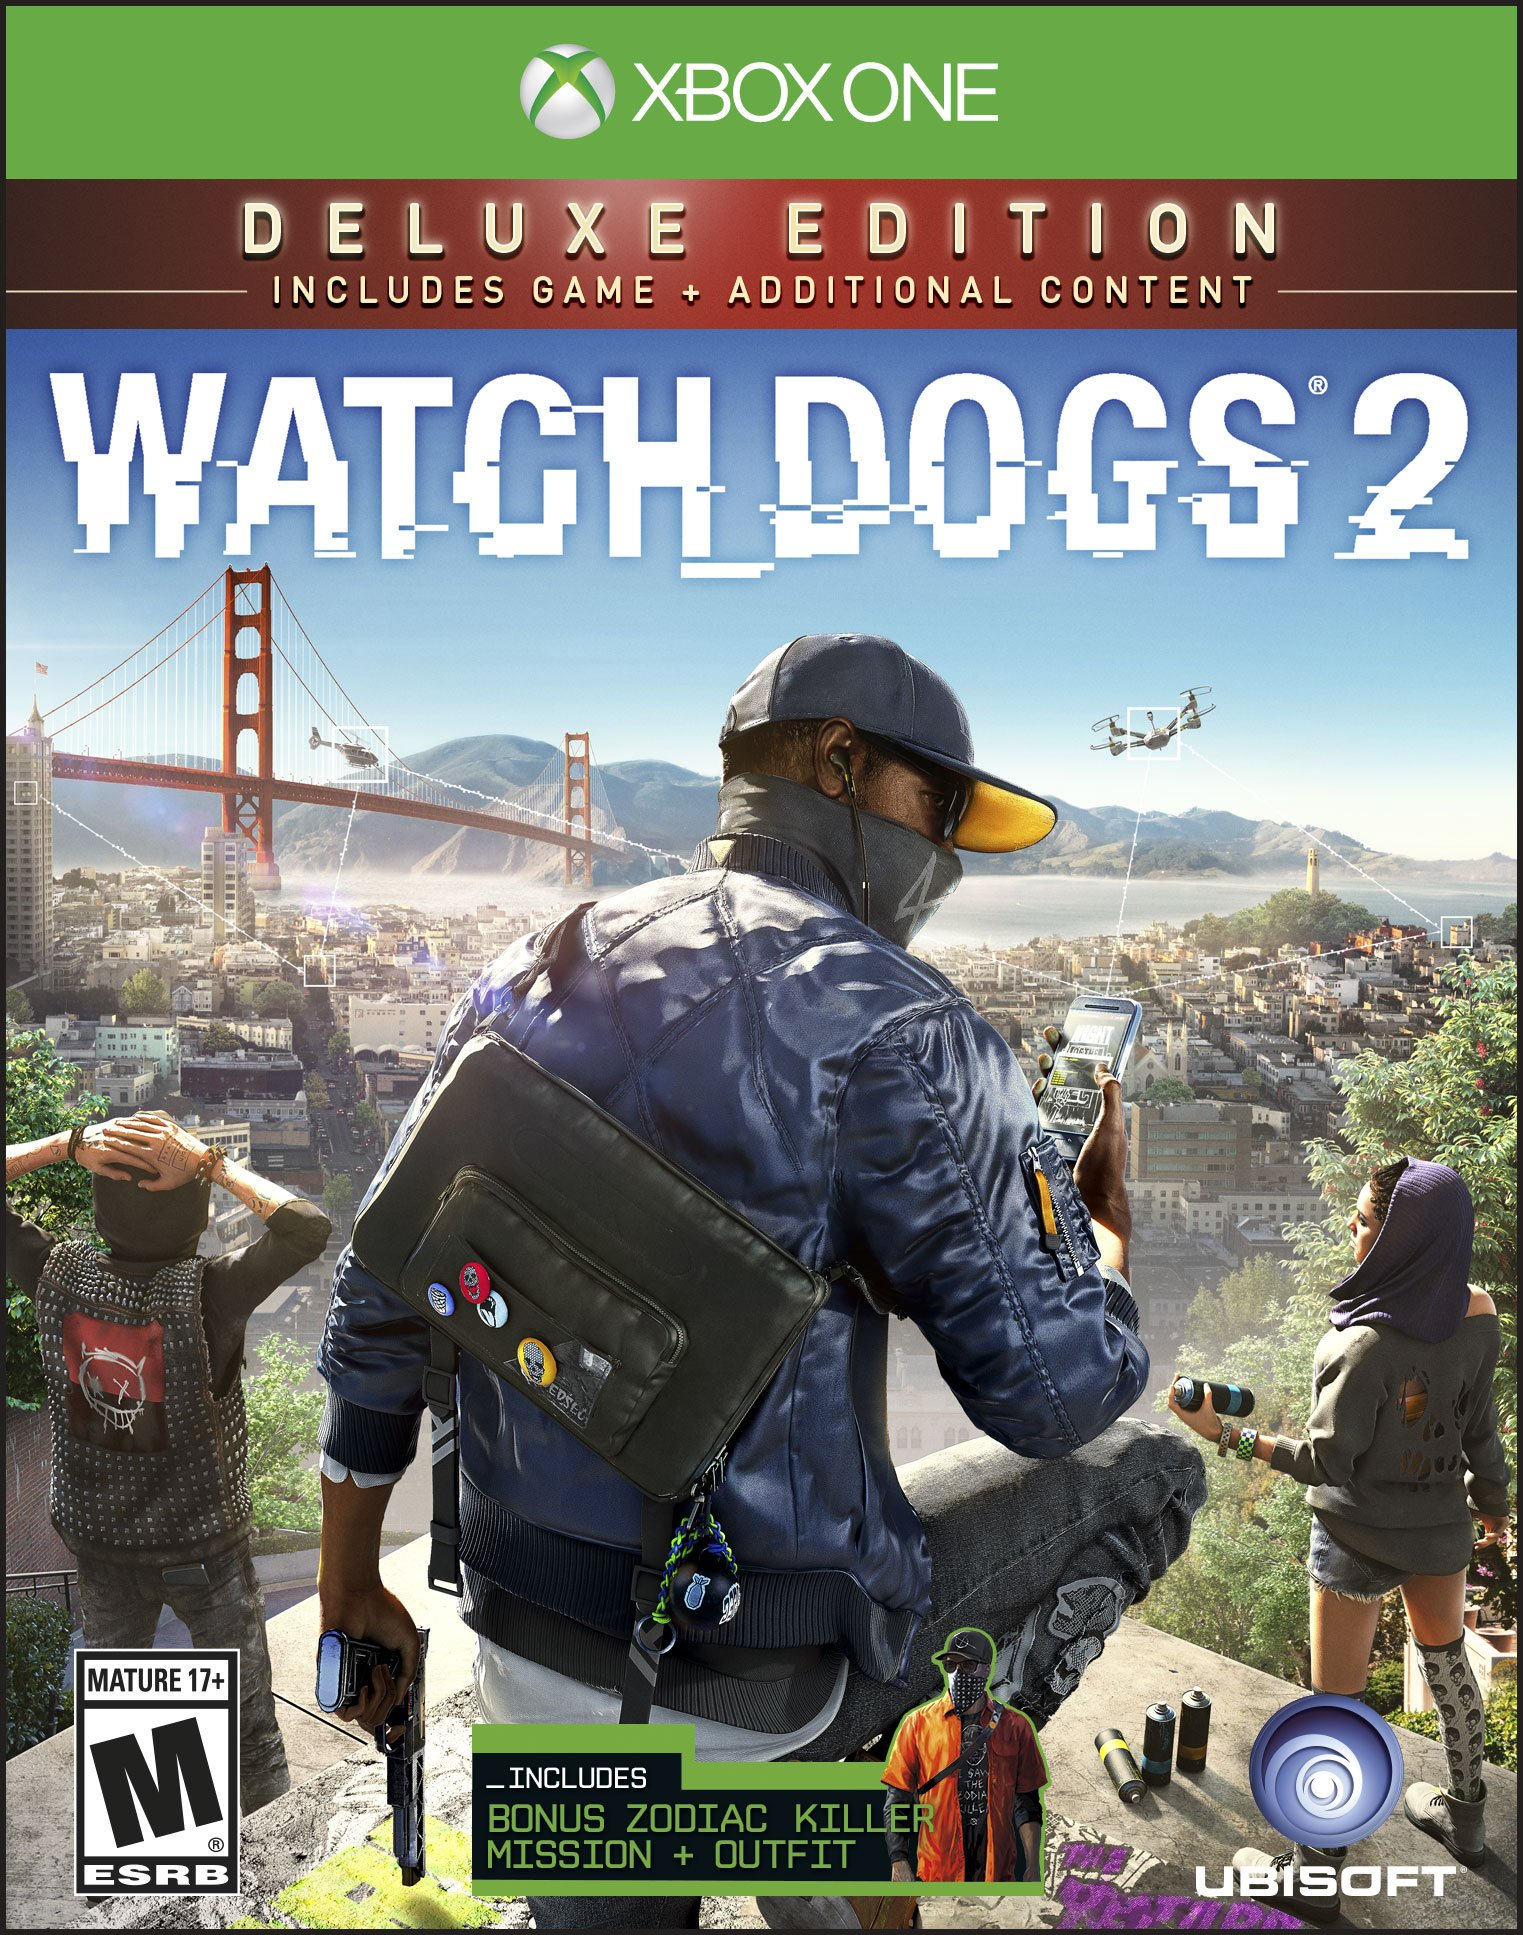 Watch Dogs 2 Deluxe Edition (Xbox One) Ubisoft, 887256022822 by Ubisoft